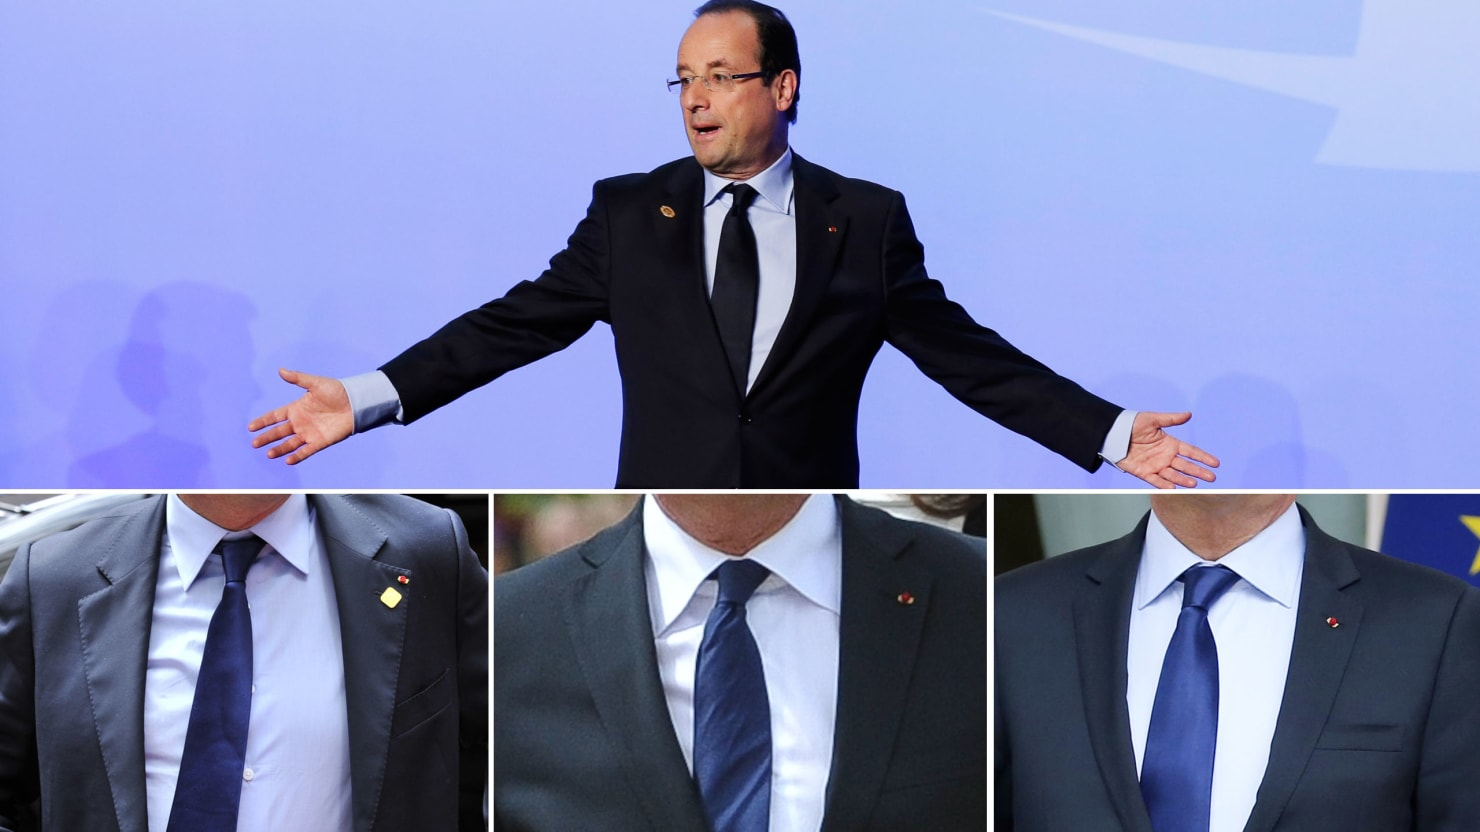 Francois Illas New Tradition: French President Francois Hollande's Inability To Tie A